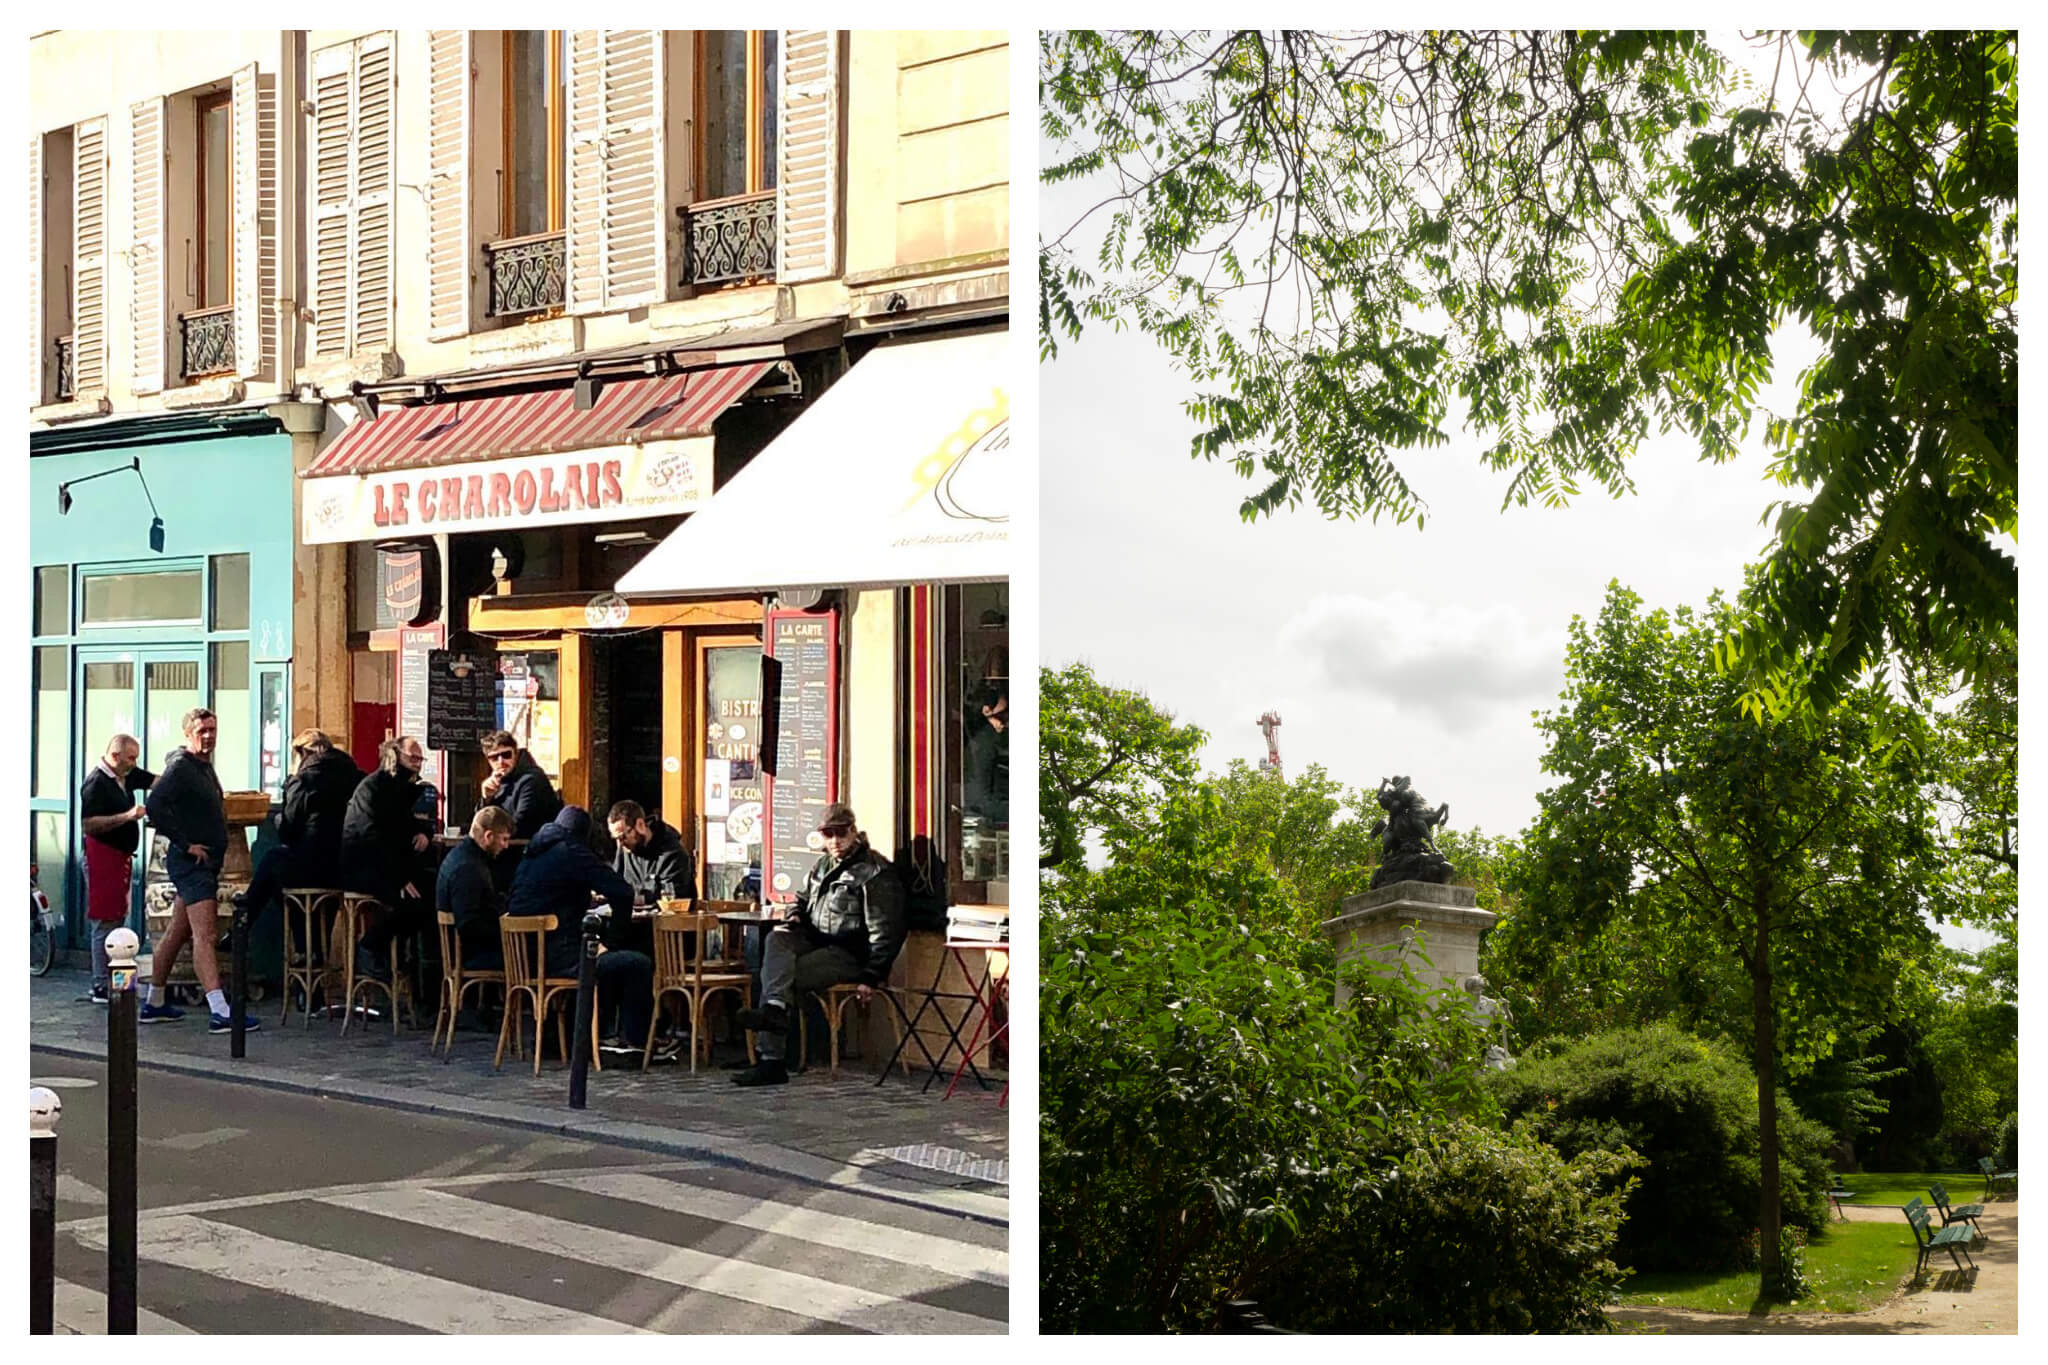 Left: A busy terrace filled with people at a Parisian bistro at the Place d'Aligre, Right: Trees and shrubbery are filled with bright green leaves on a summer day in a square in Paris